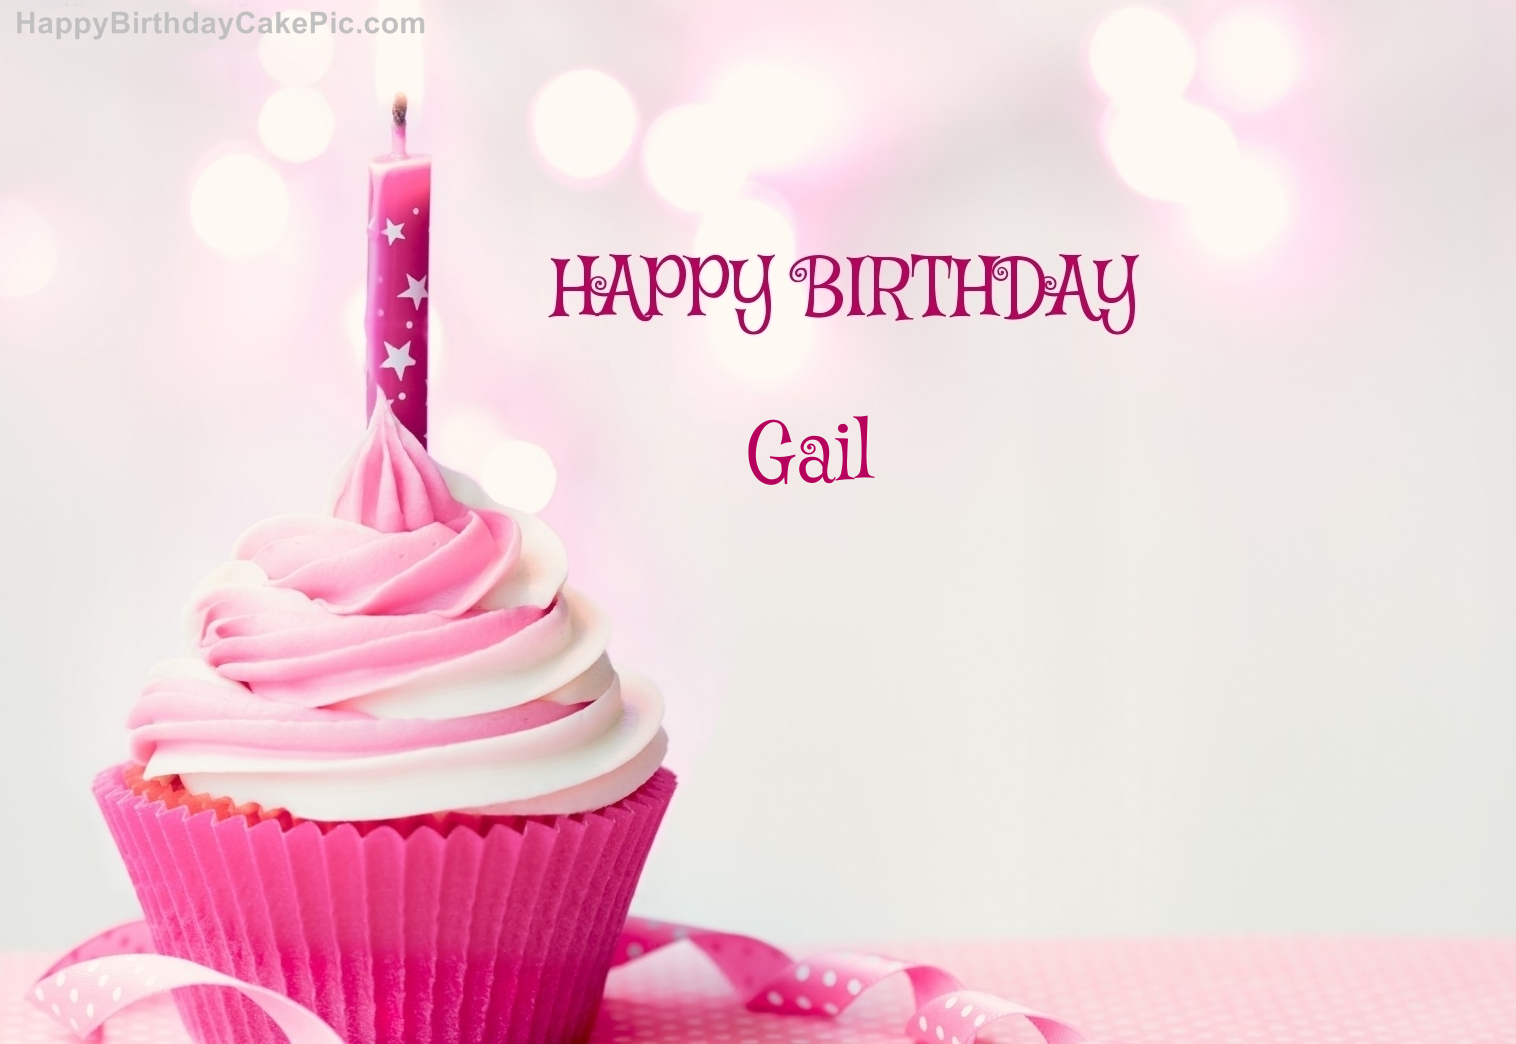 Happy Birthday Cupcake Candle Pink Cake For Gail